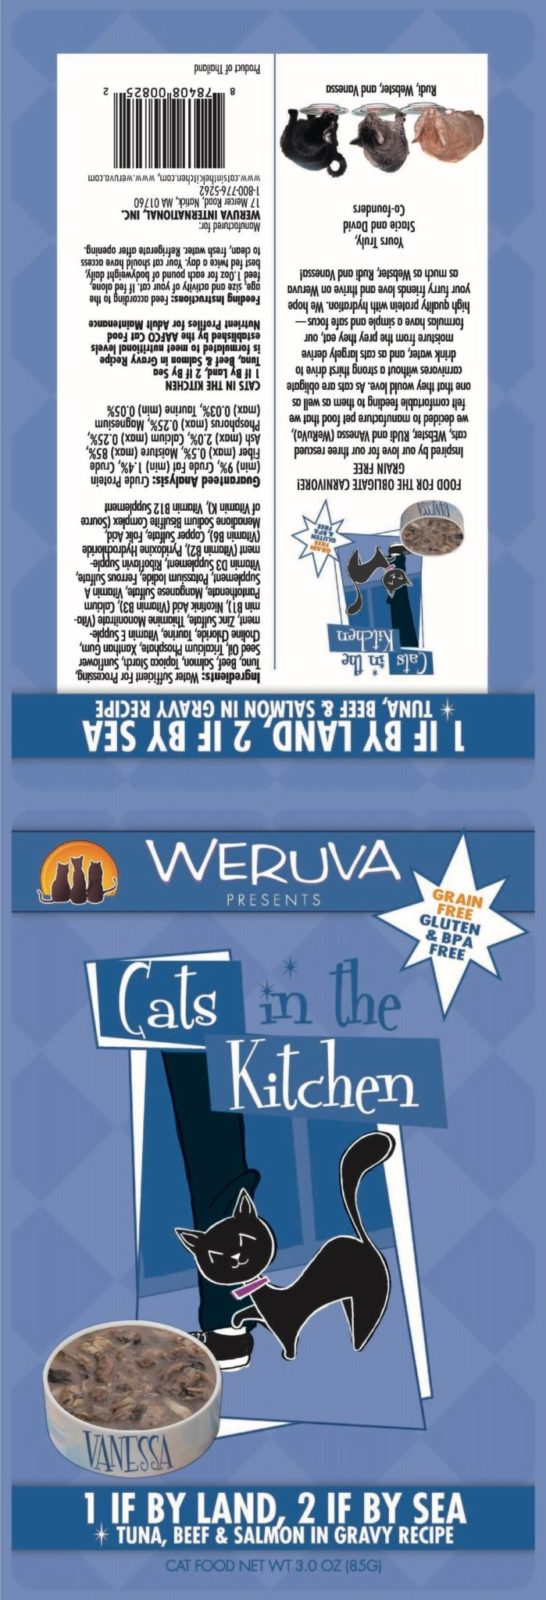 Weruva 1 If By Land, 2 If by sea for cats